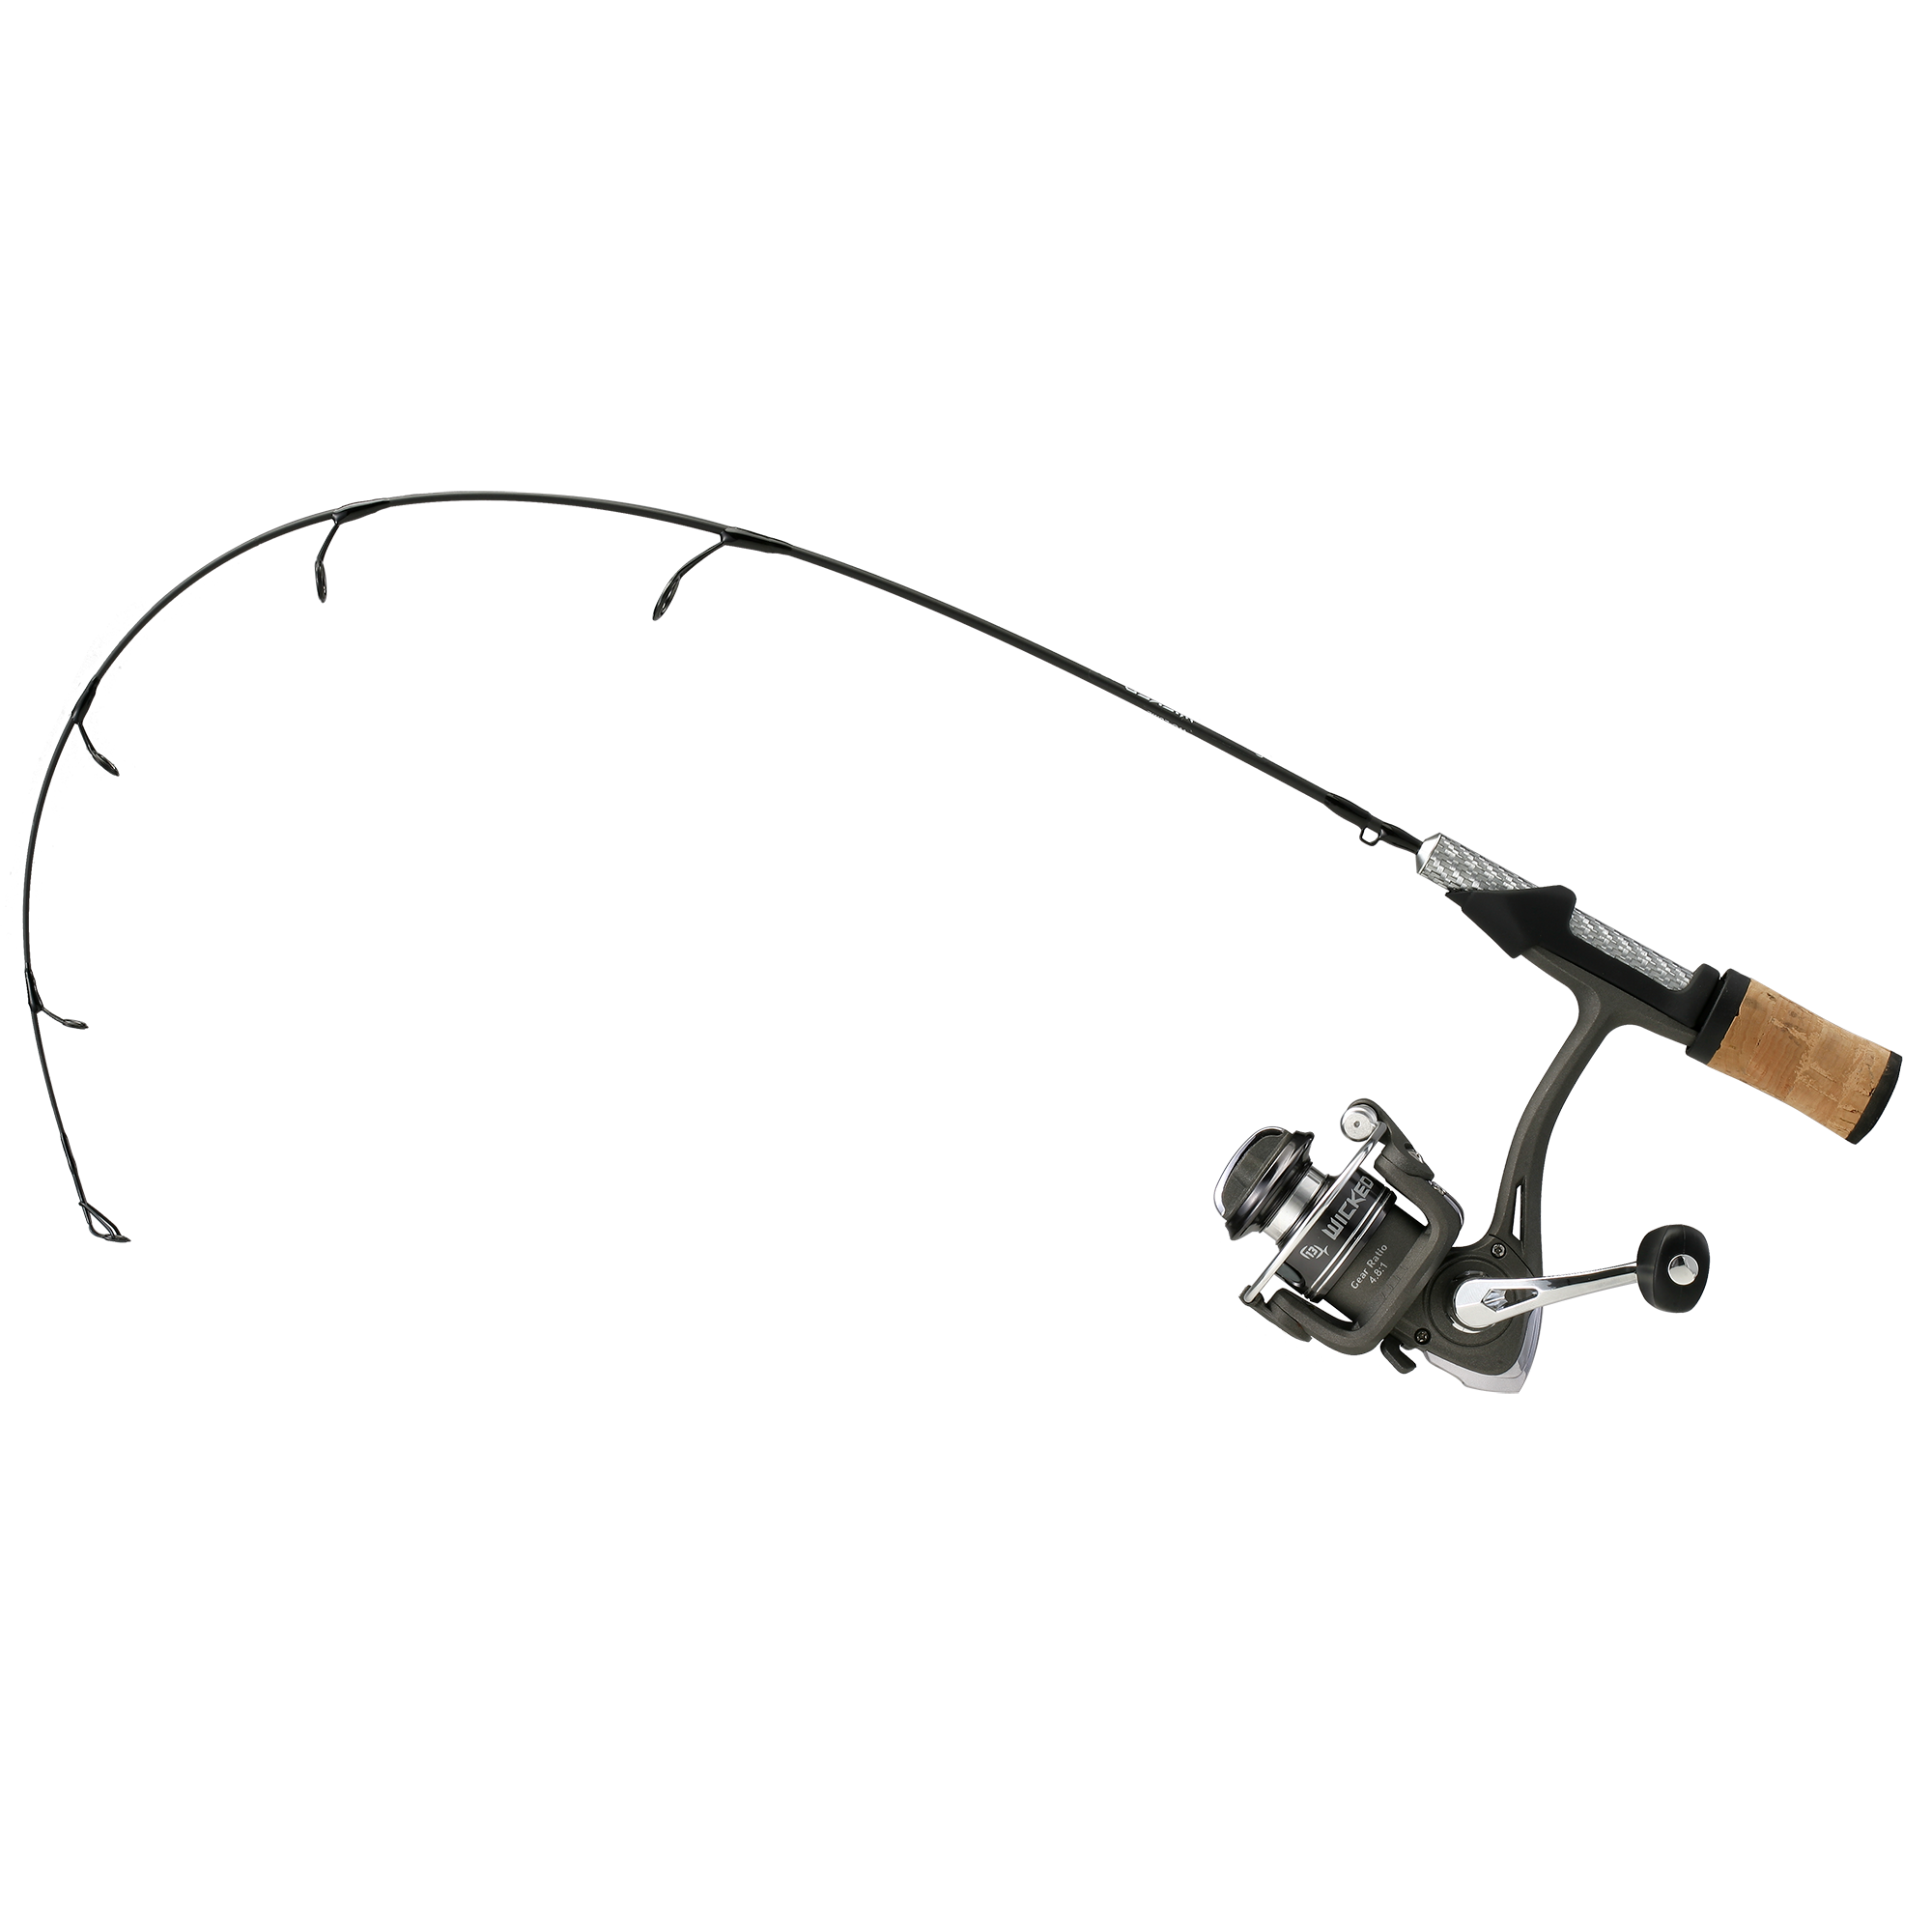 Fishing Rod And Reel Png Free Fishing Rod And Reel Png Transparent Images 94993 Pngio